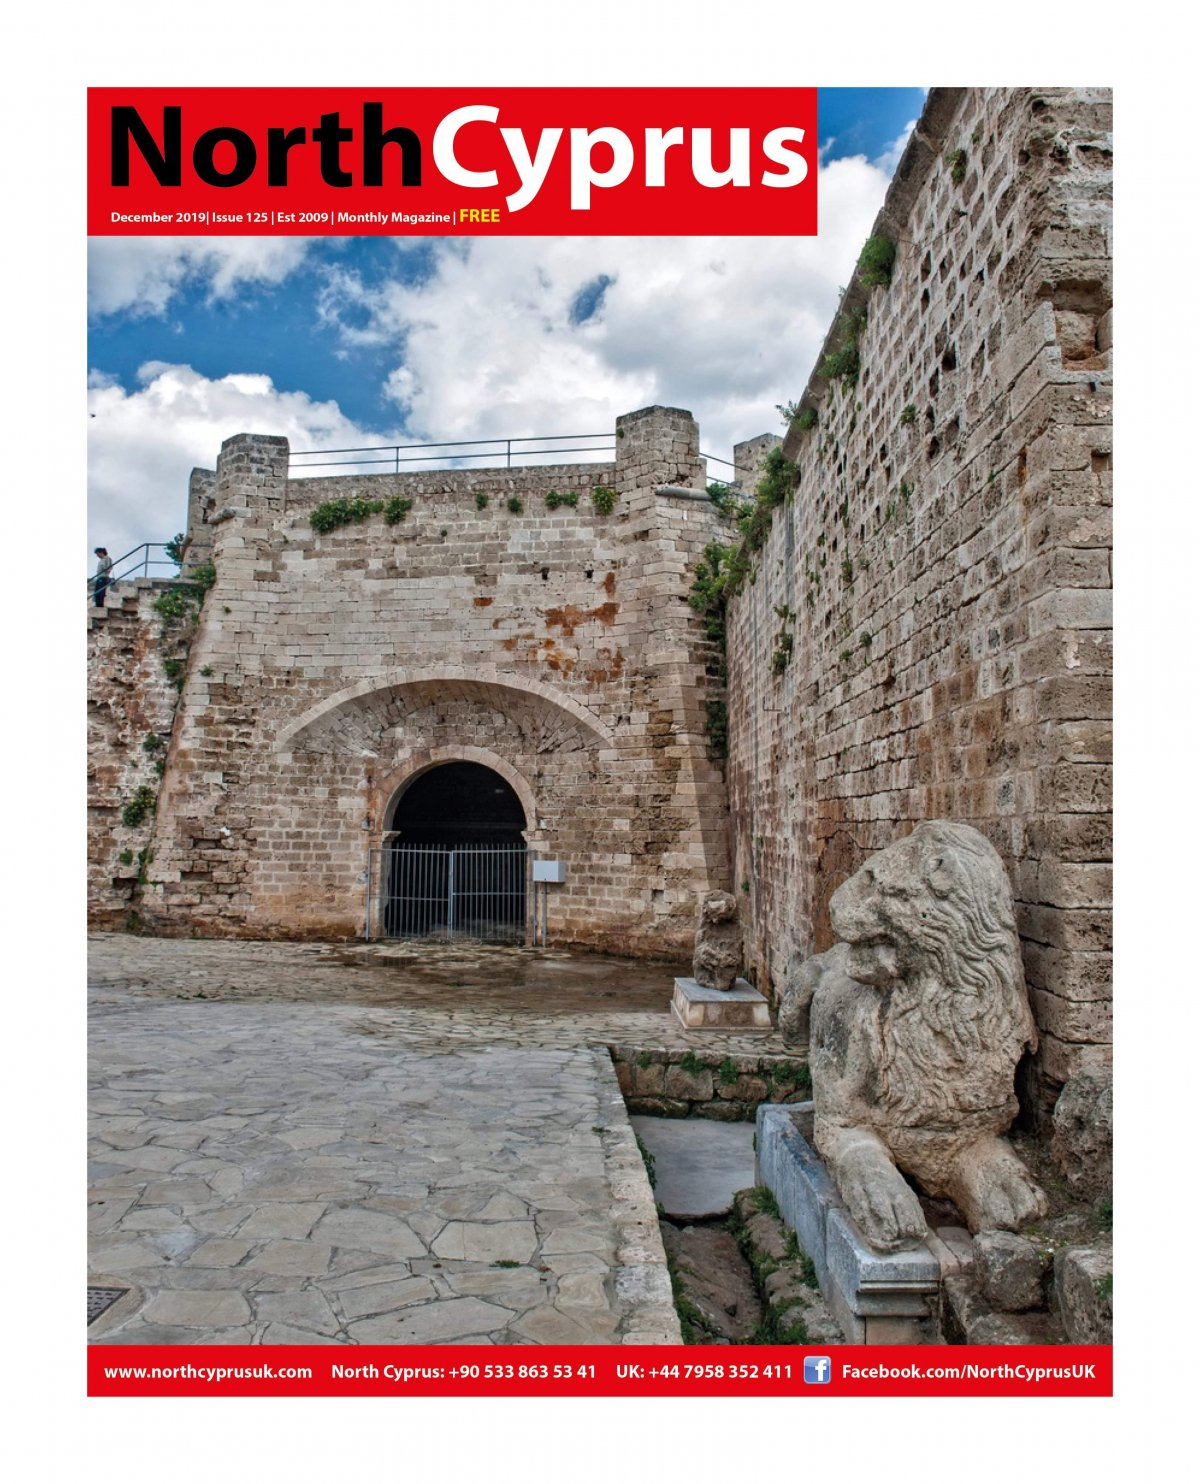 North Cyprus UK - 05.12.2019 Manşeti